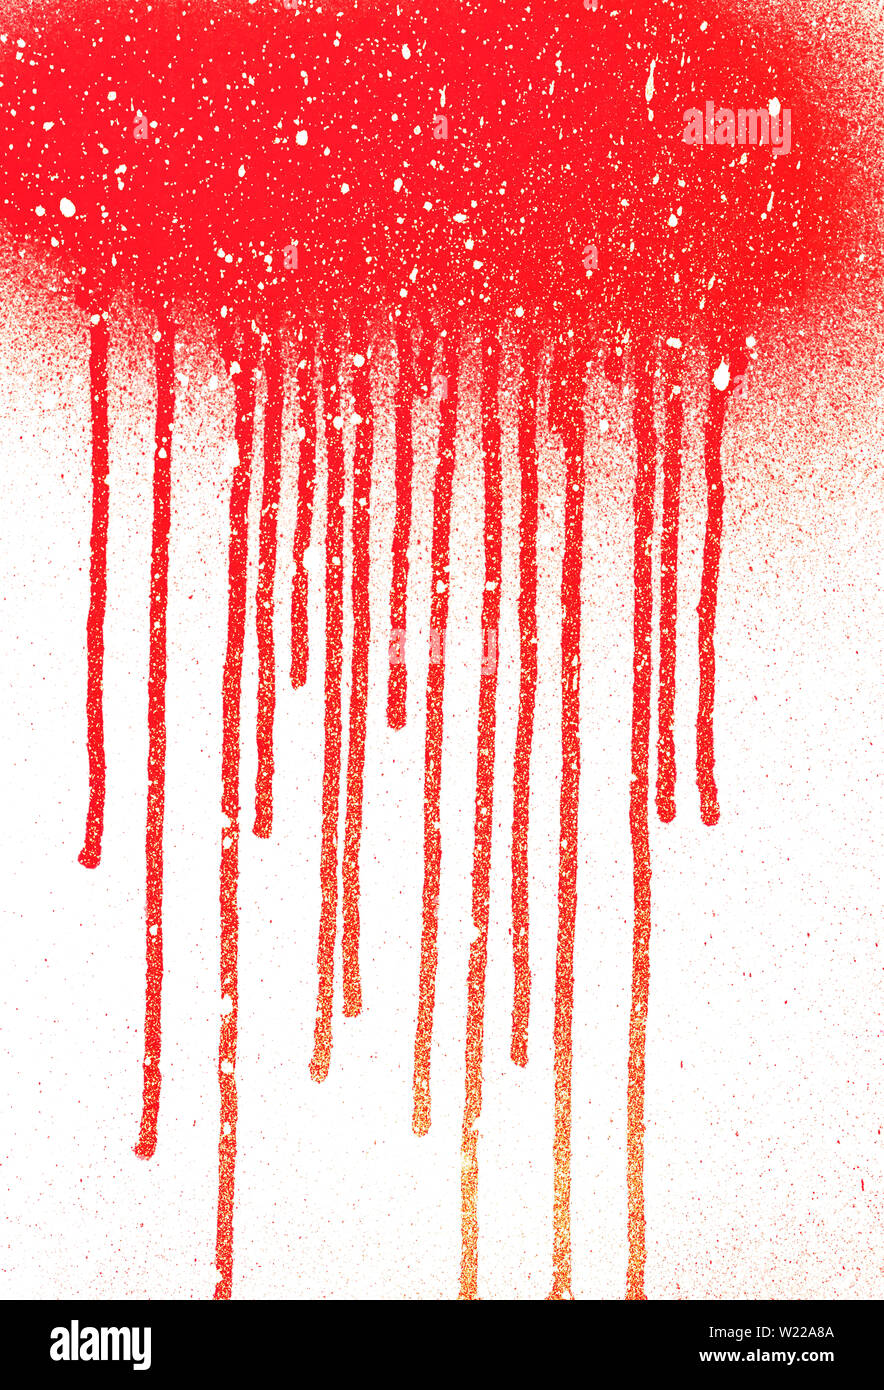 Abstract Dripping Paint Aerosol Art With Snow Effect Copy Space